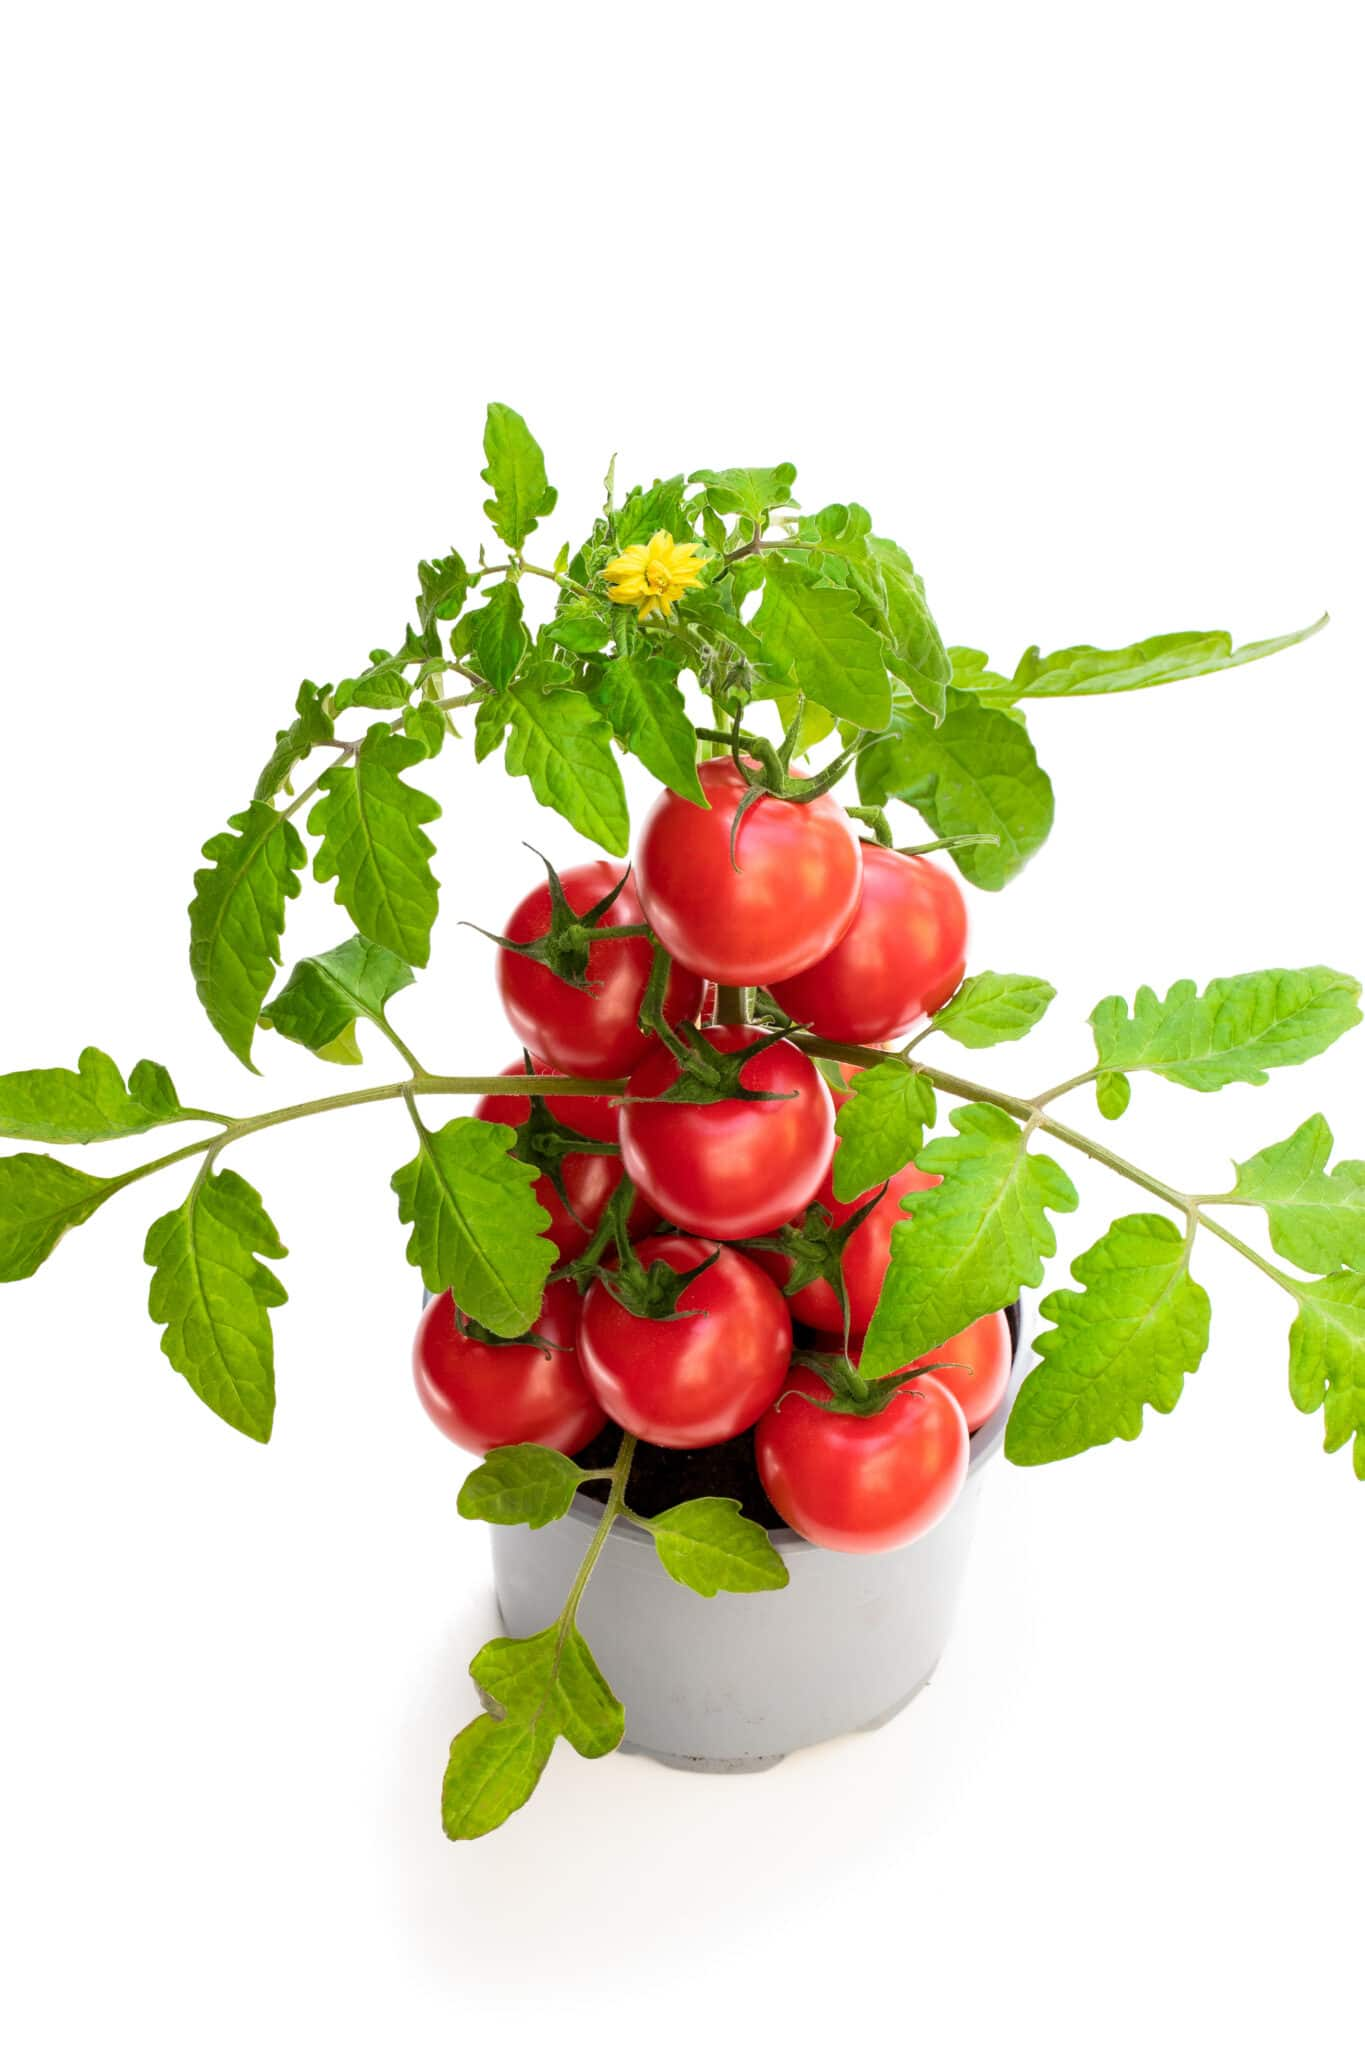 A fully laden tomato plant growing in a small pot, showing why tomatoes are one of the best vegetables to grow indoors.